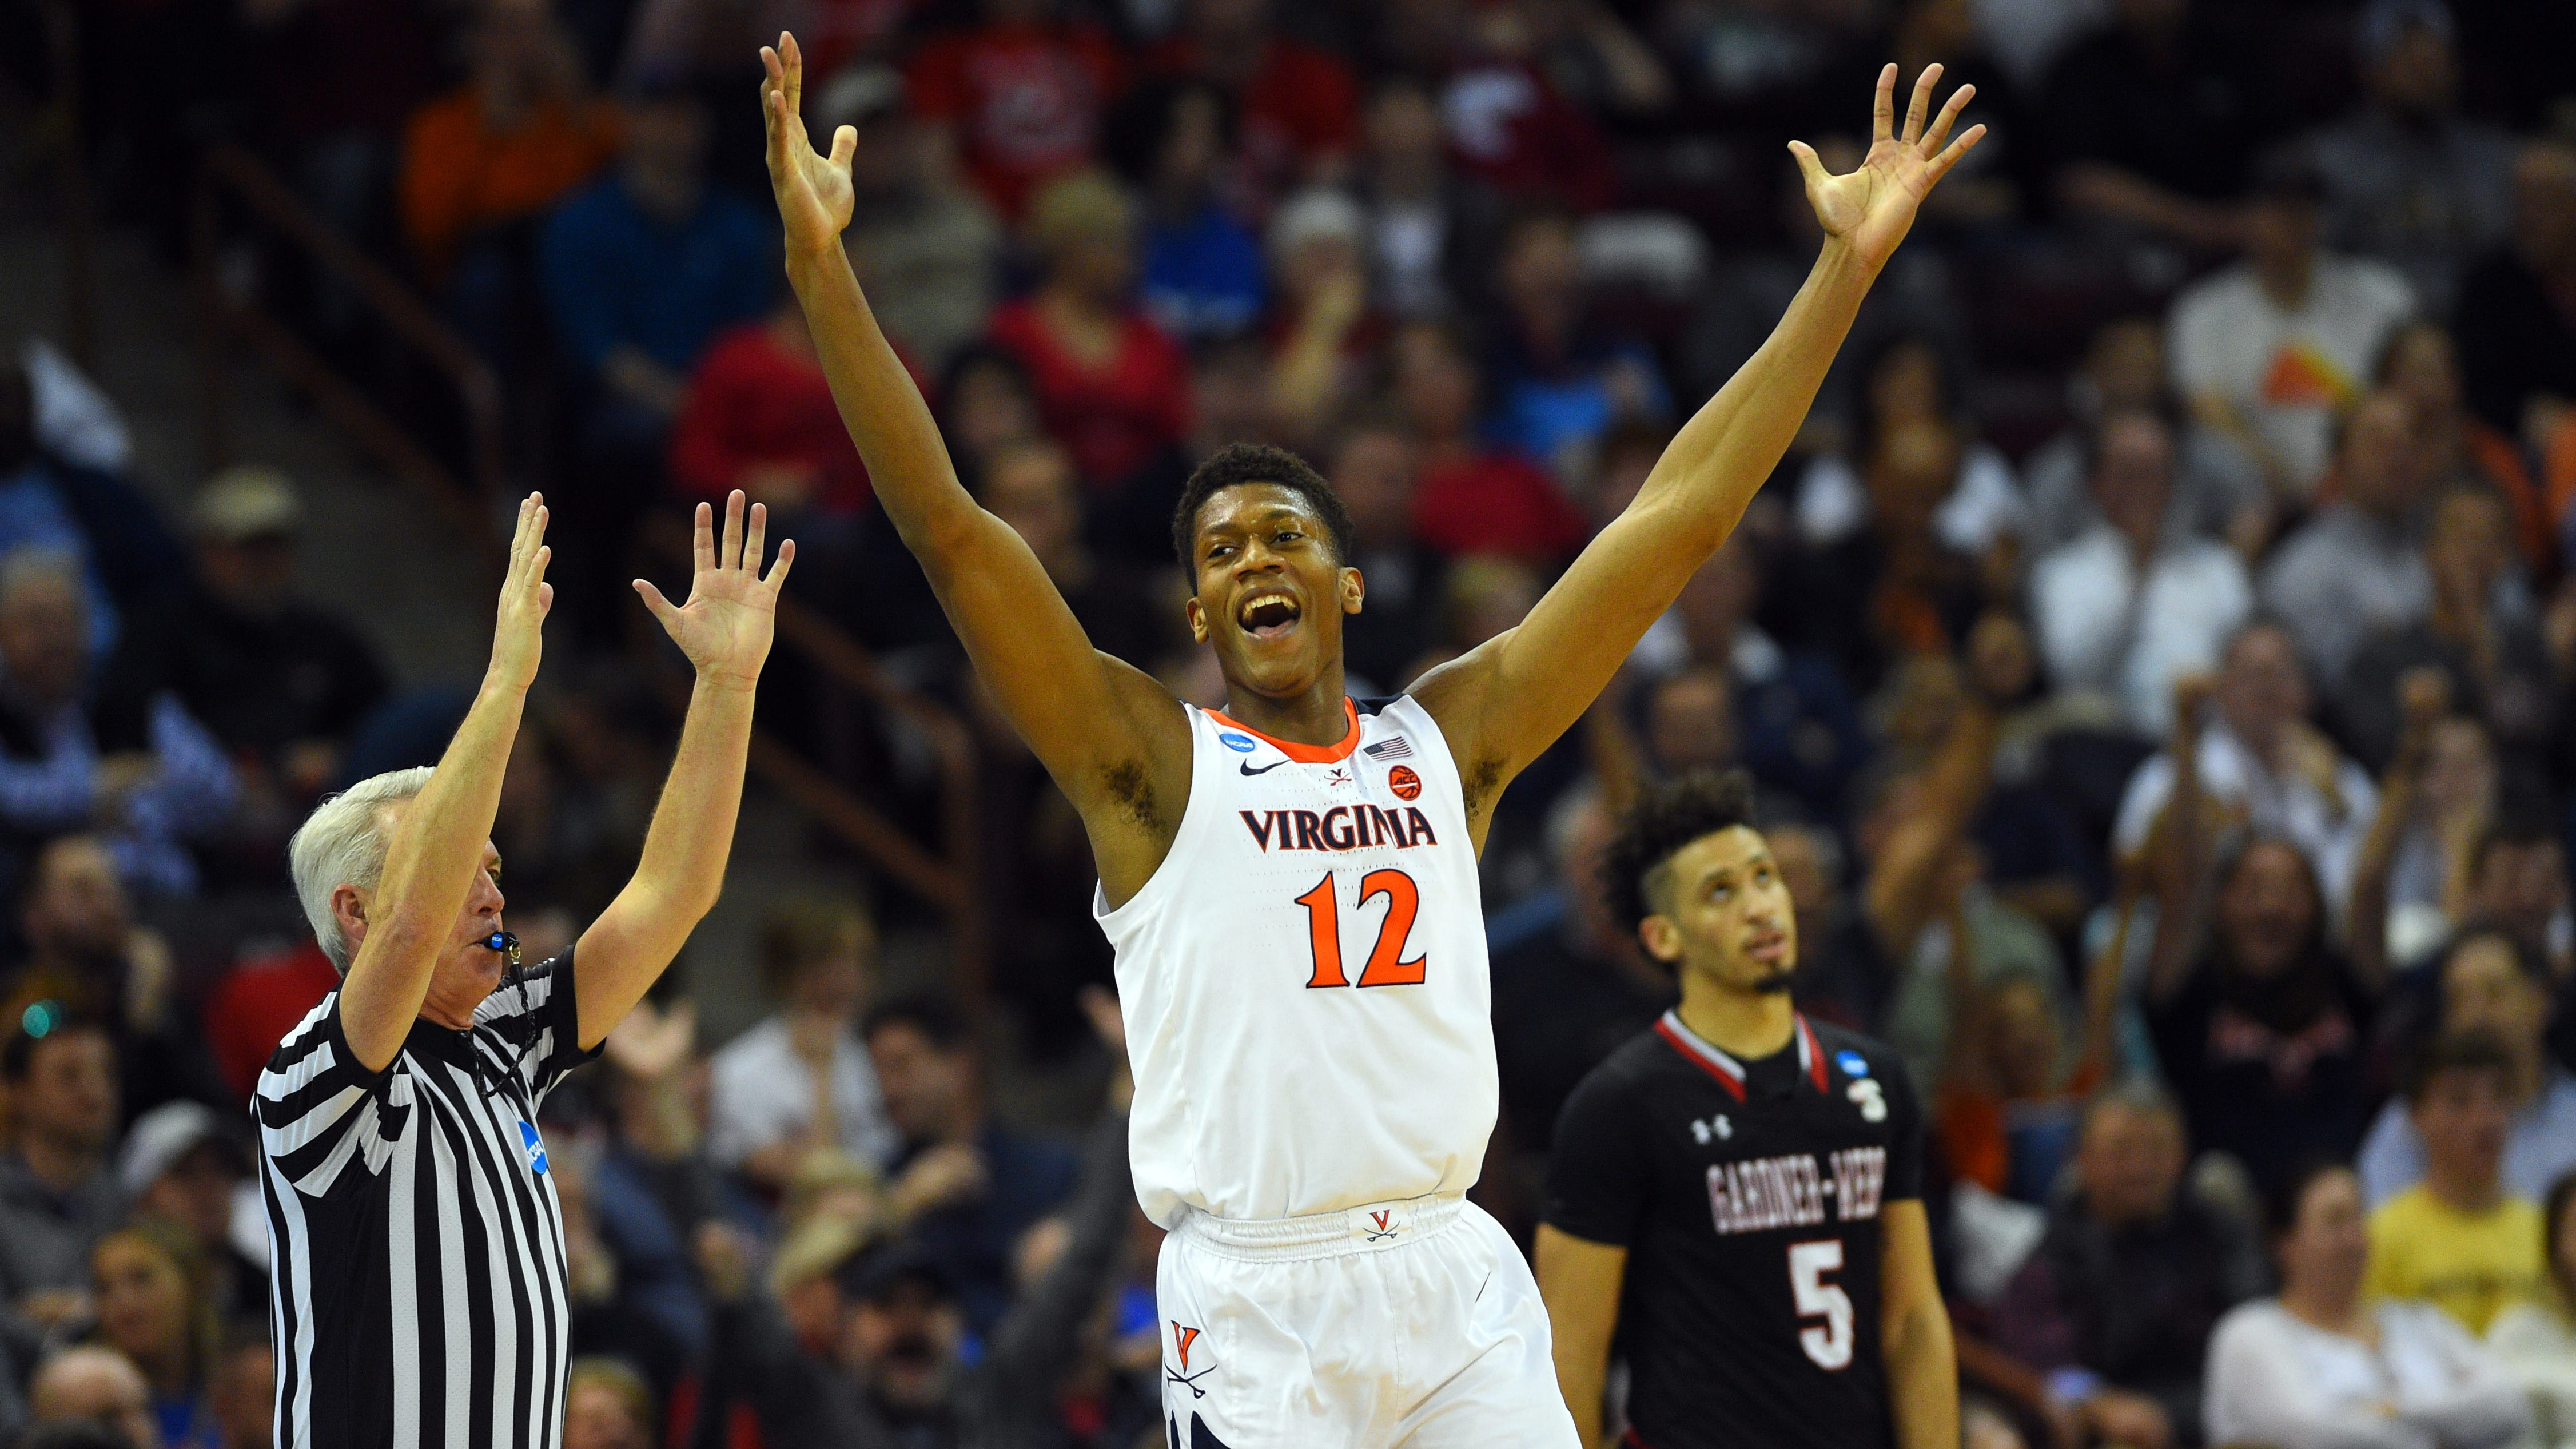 Virginia's De'Andre Hunter celebrates after making a basket during the second half of the Cavaliers' first-round game.